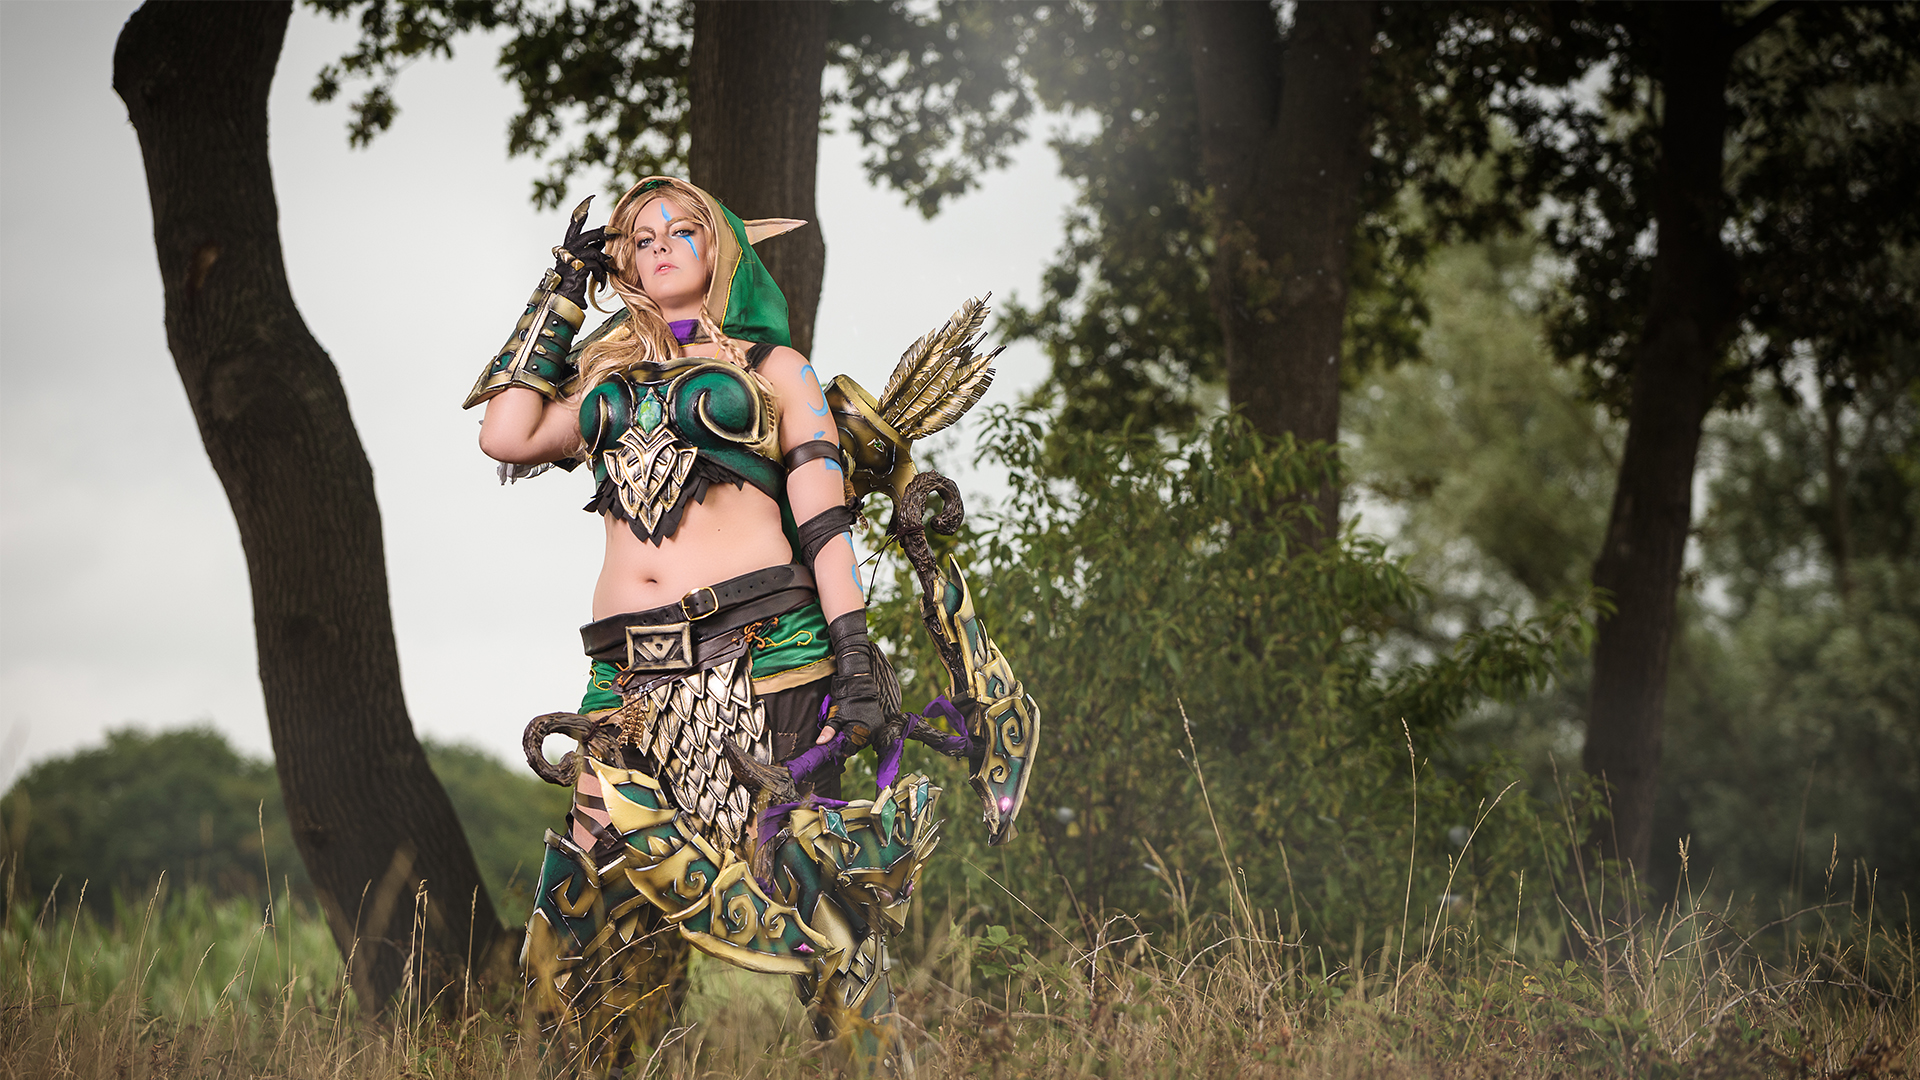 By Jeroen Weimar Photography / tehweiman - Kalseru Cosplay